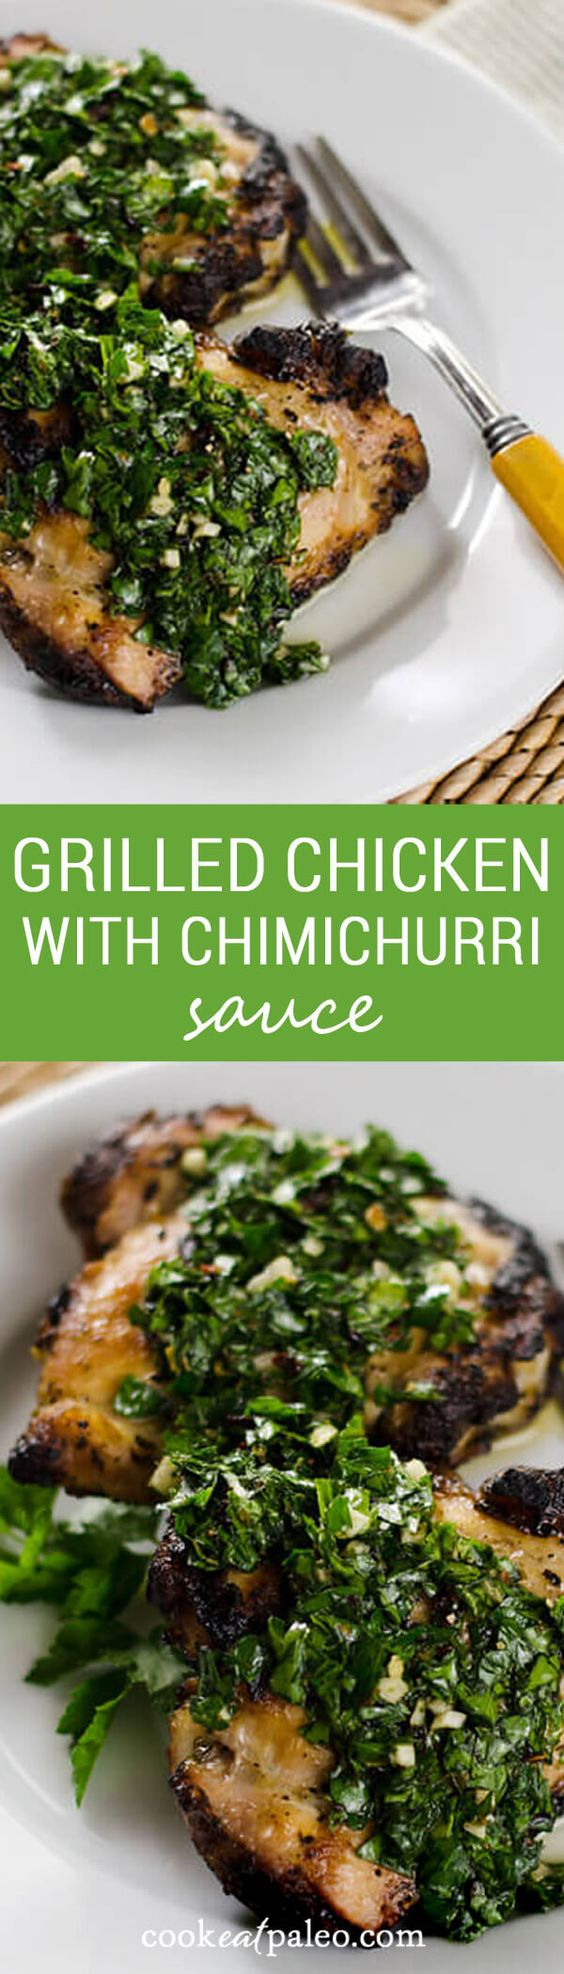 Grilled Chicken with Chimichurri Sauce - the chimichurri doubles as ...